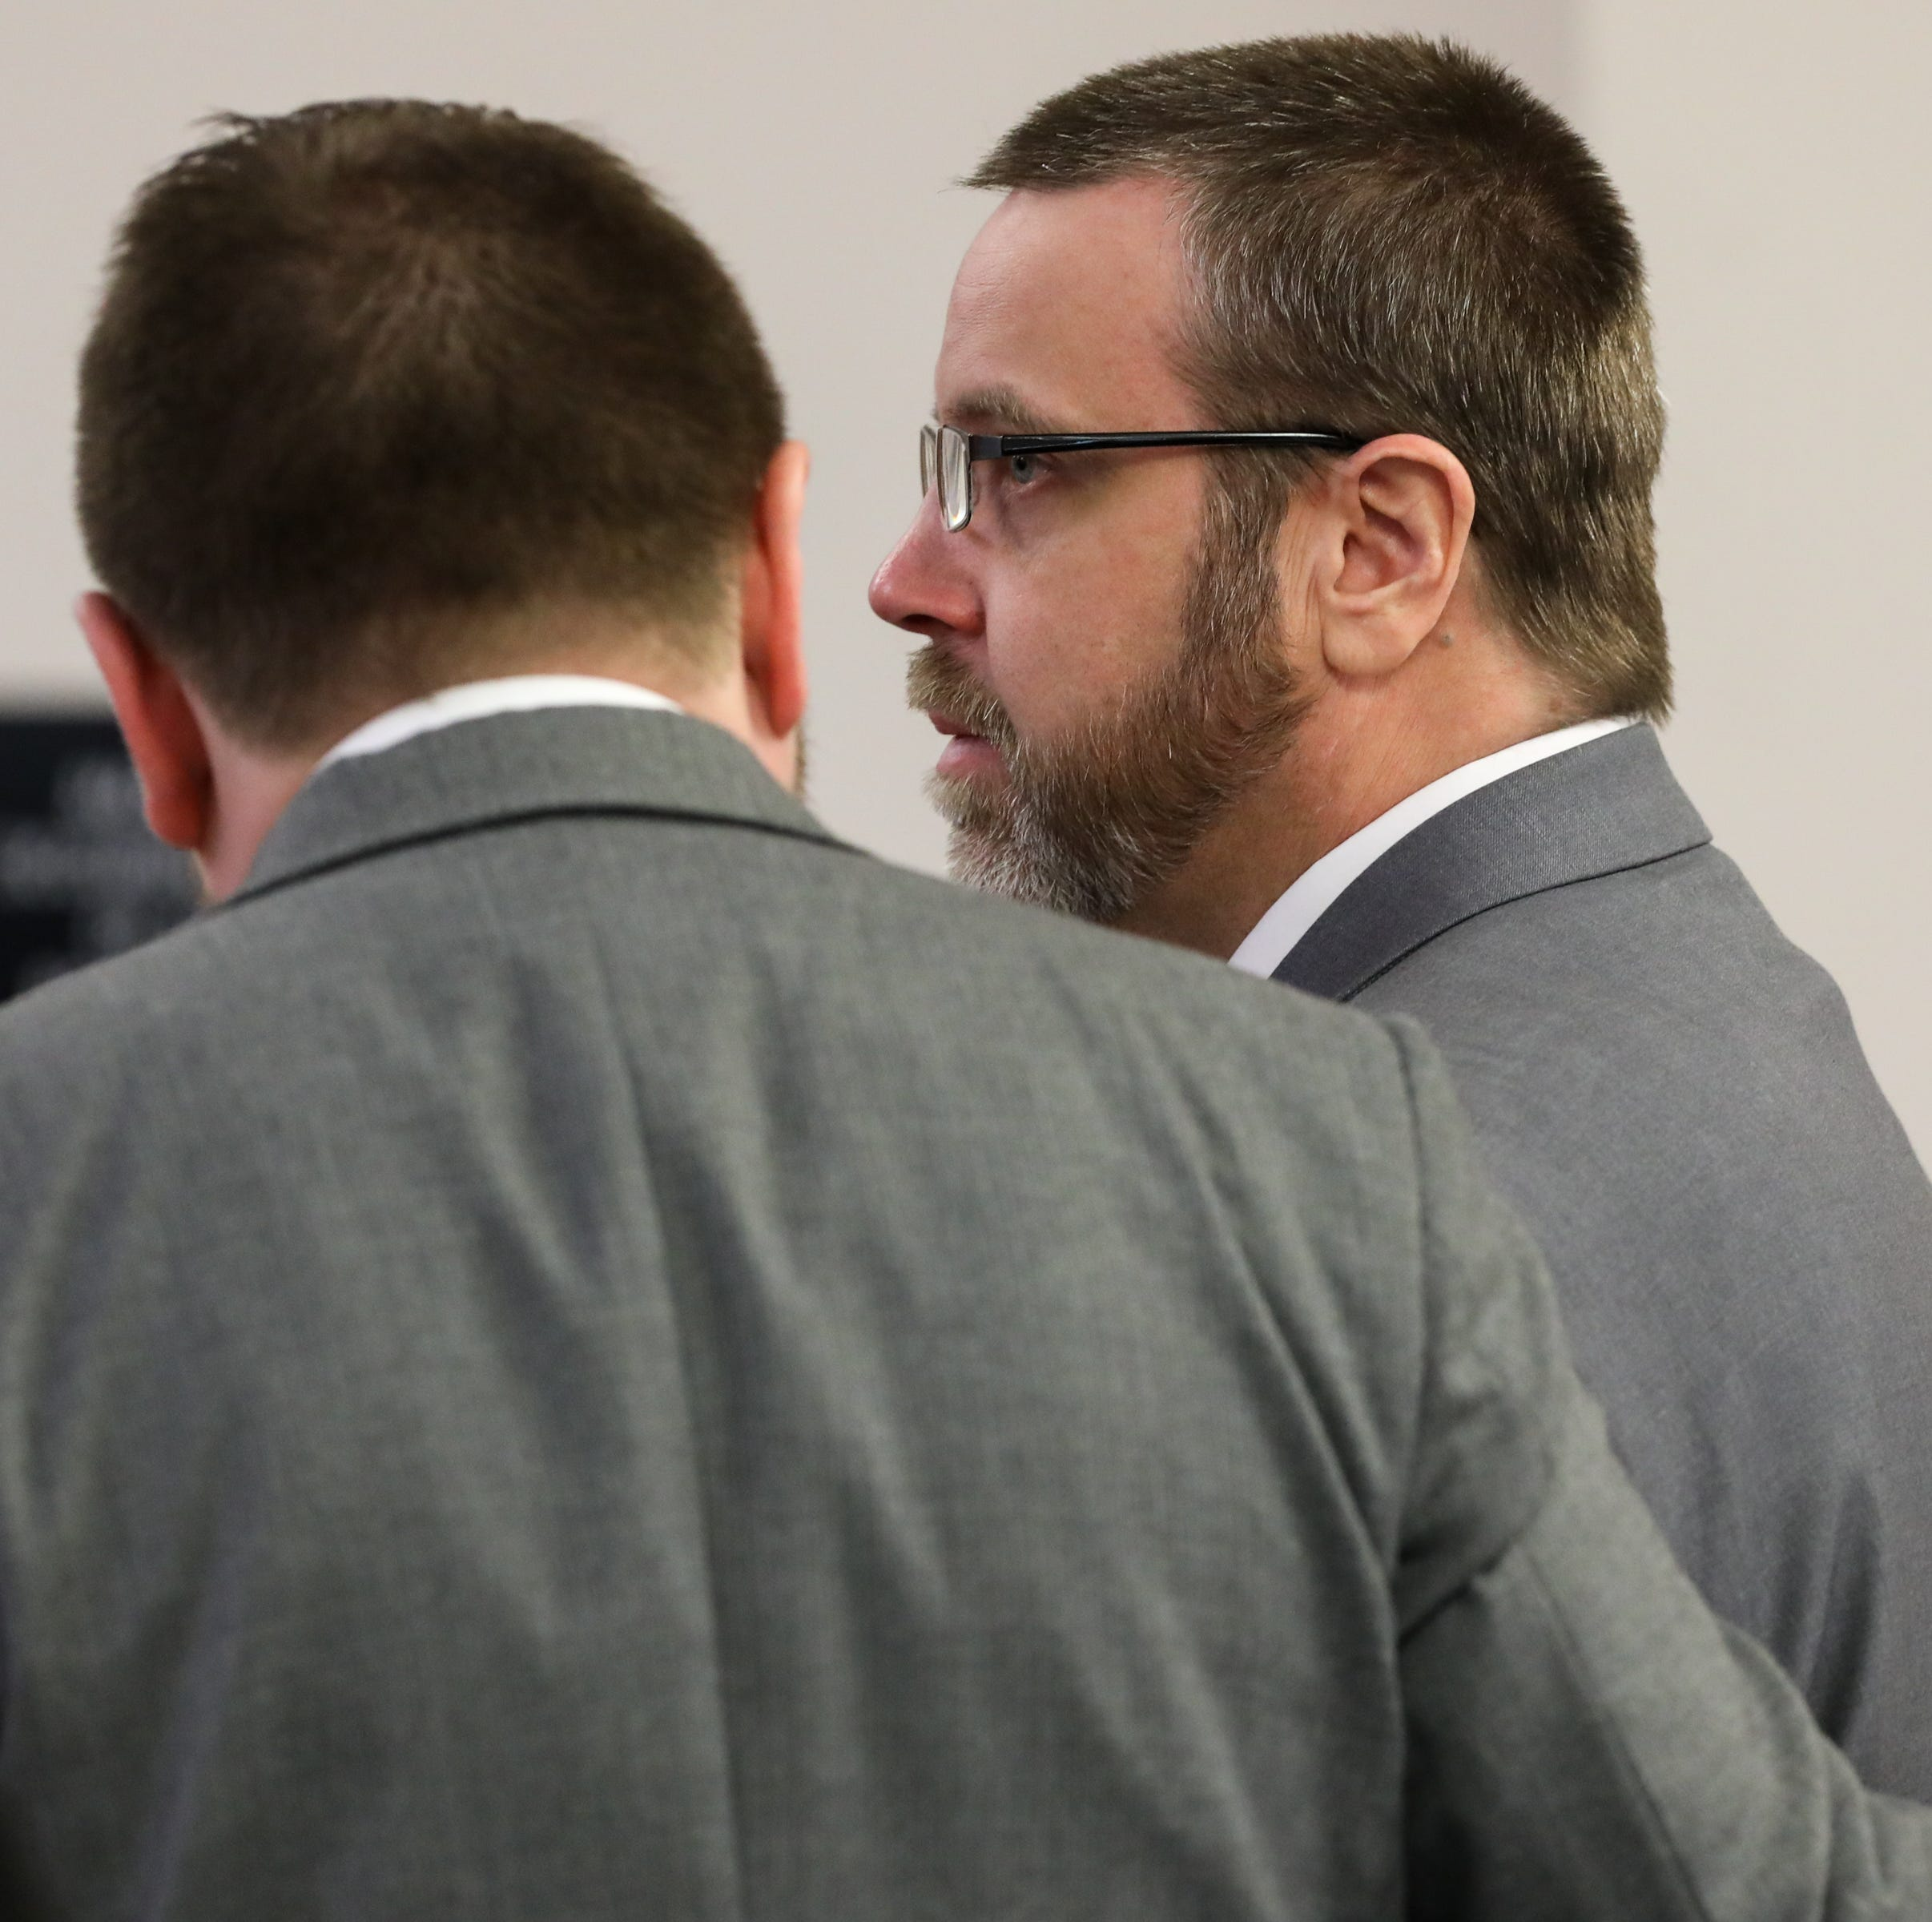 David Dooley found guilty of killing Michelle Mockbee, family says a weight is lifted